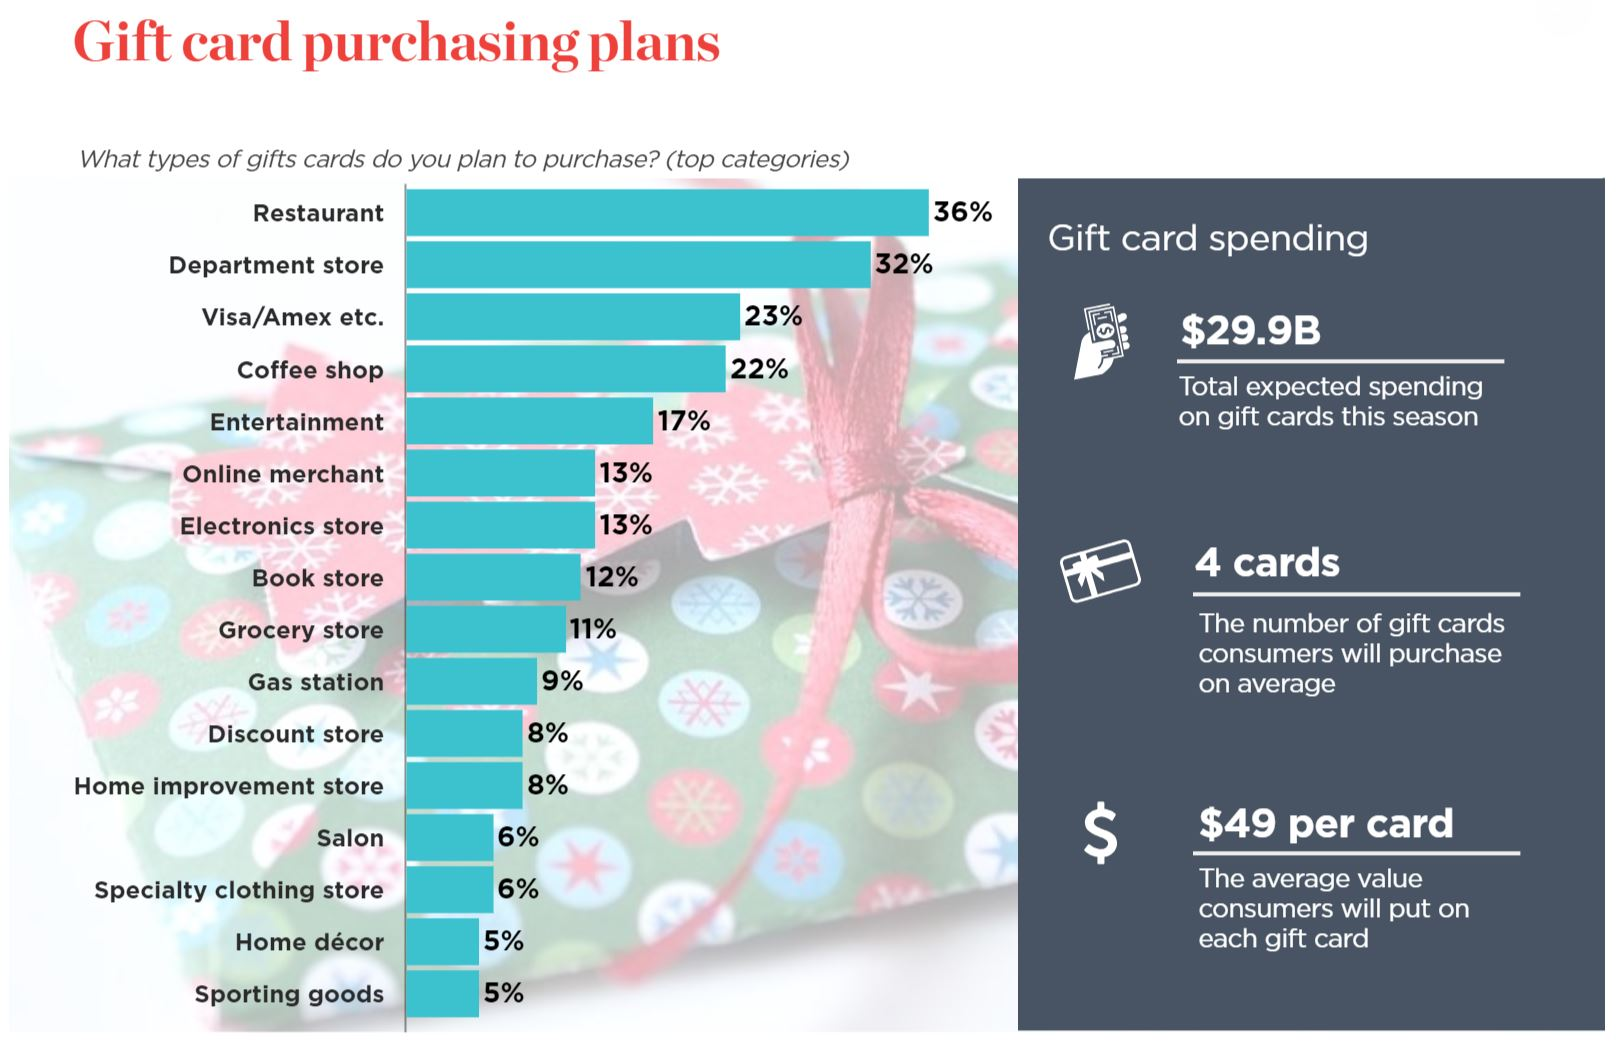 NRF gift card purchasing